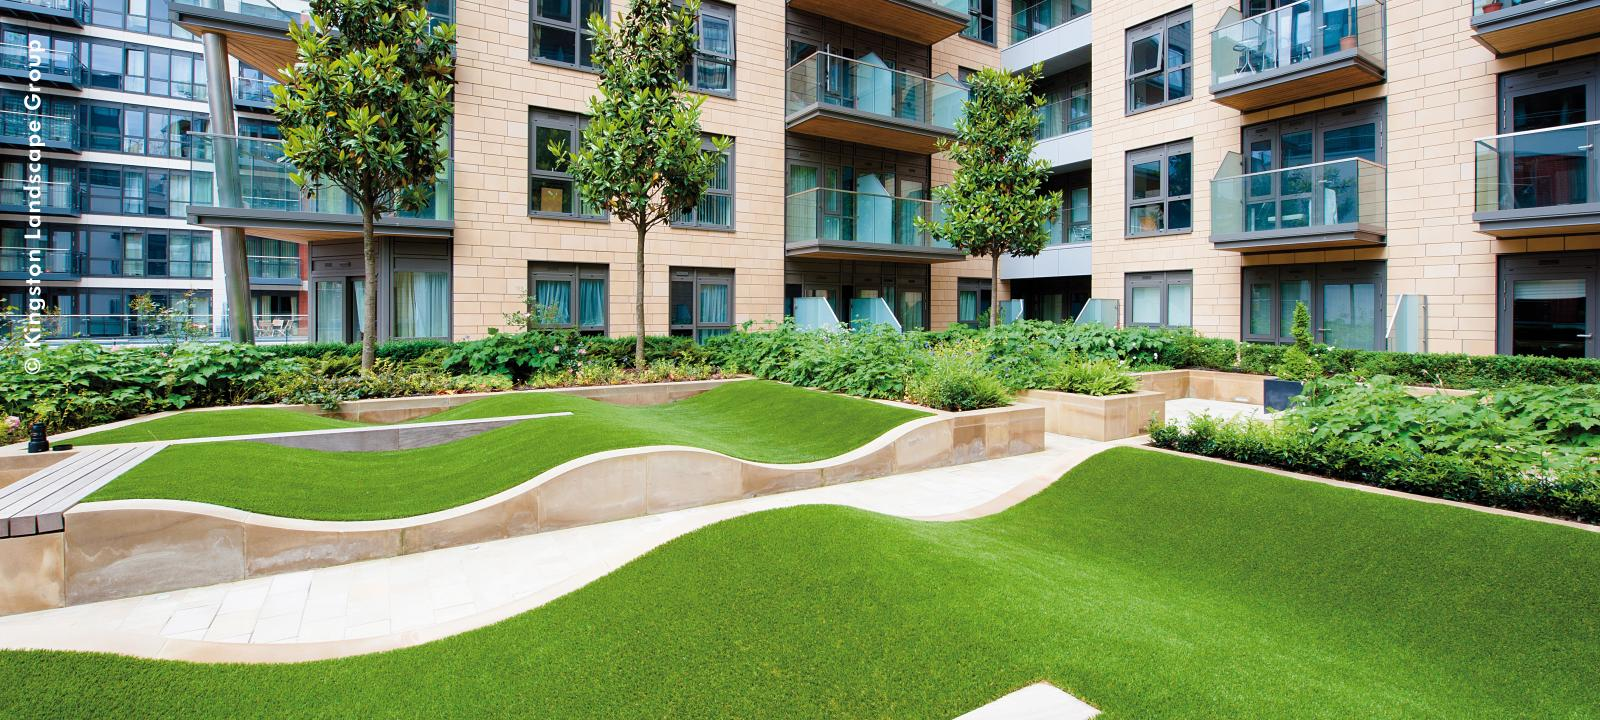 Undulating lawn patch surrounded by condominiums